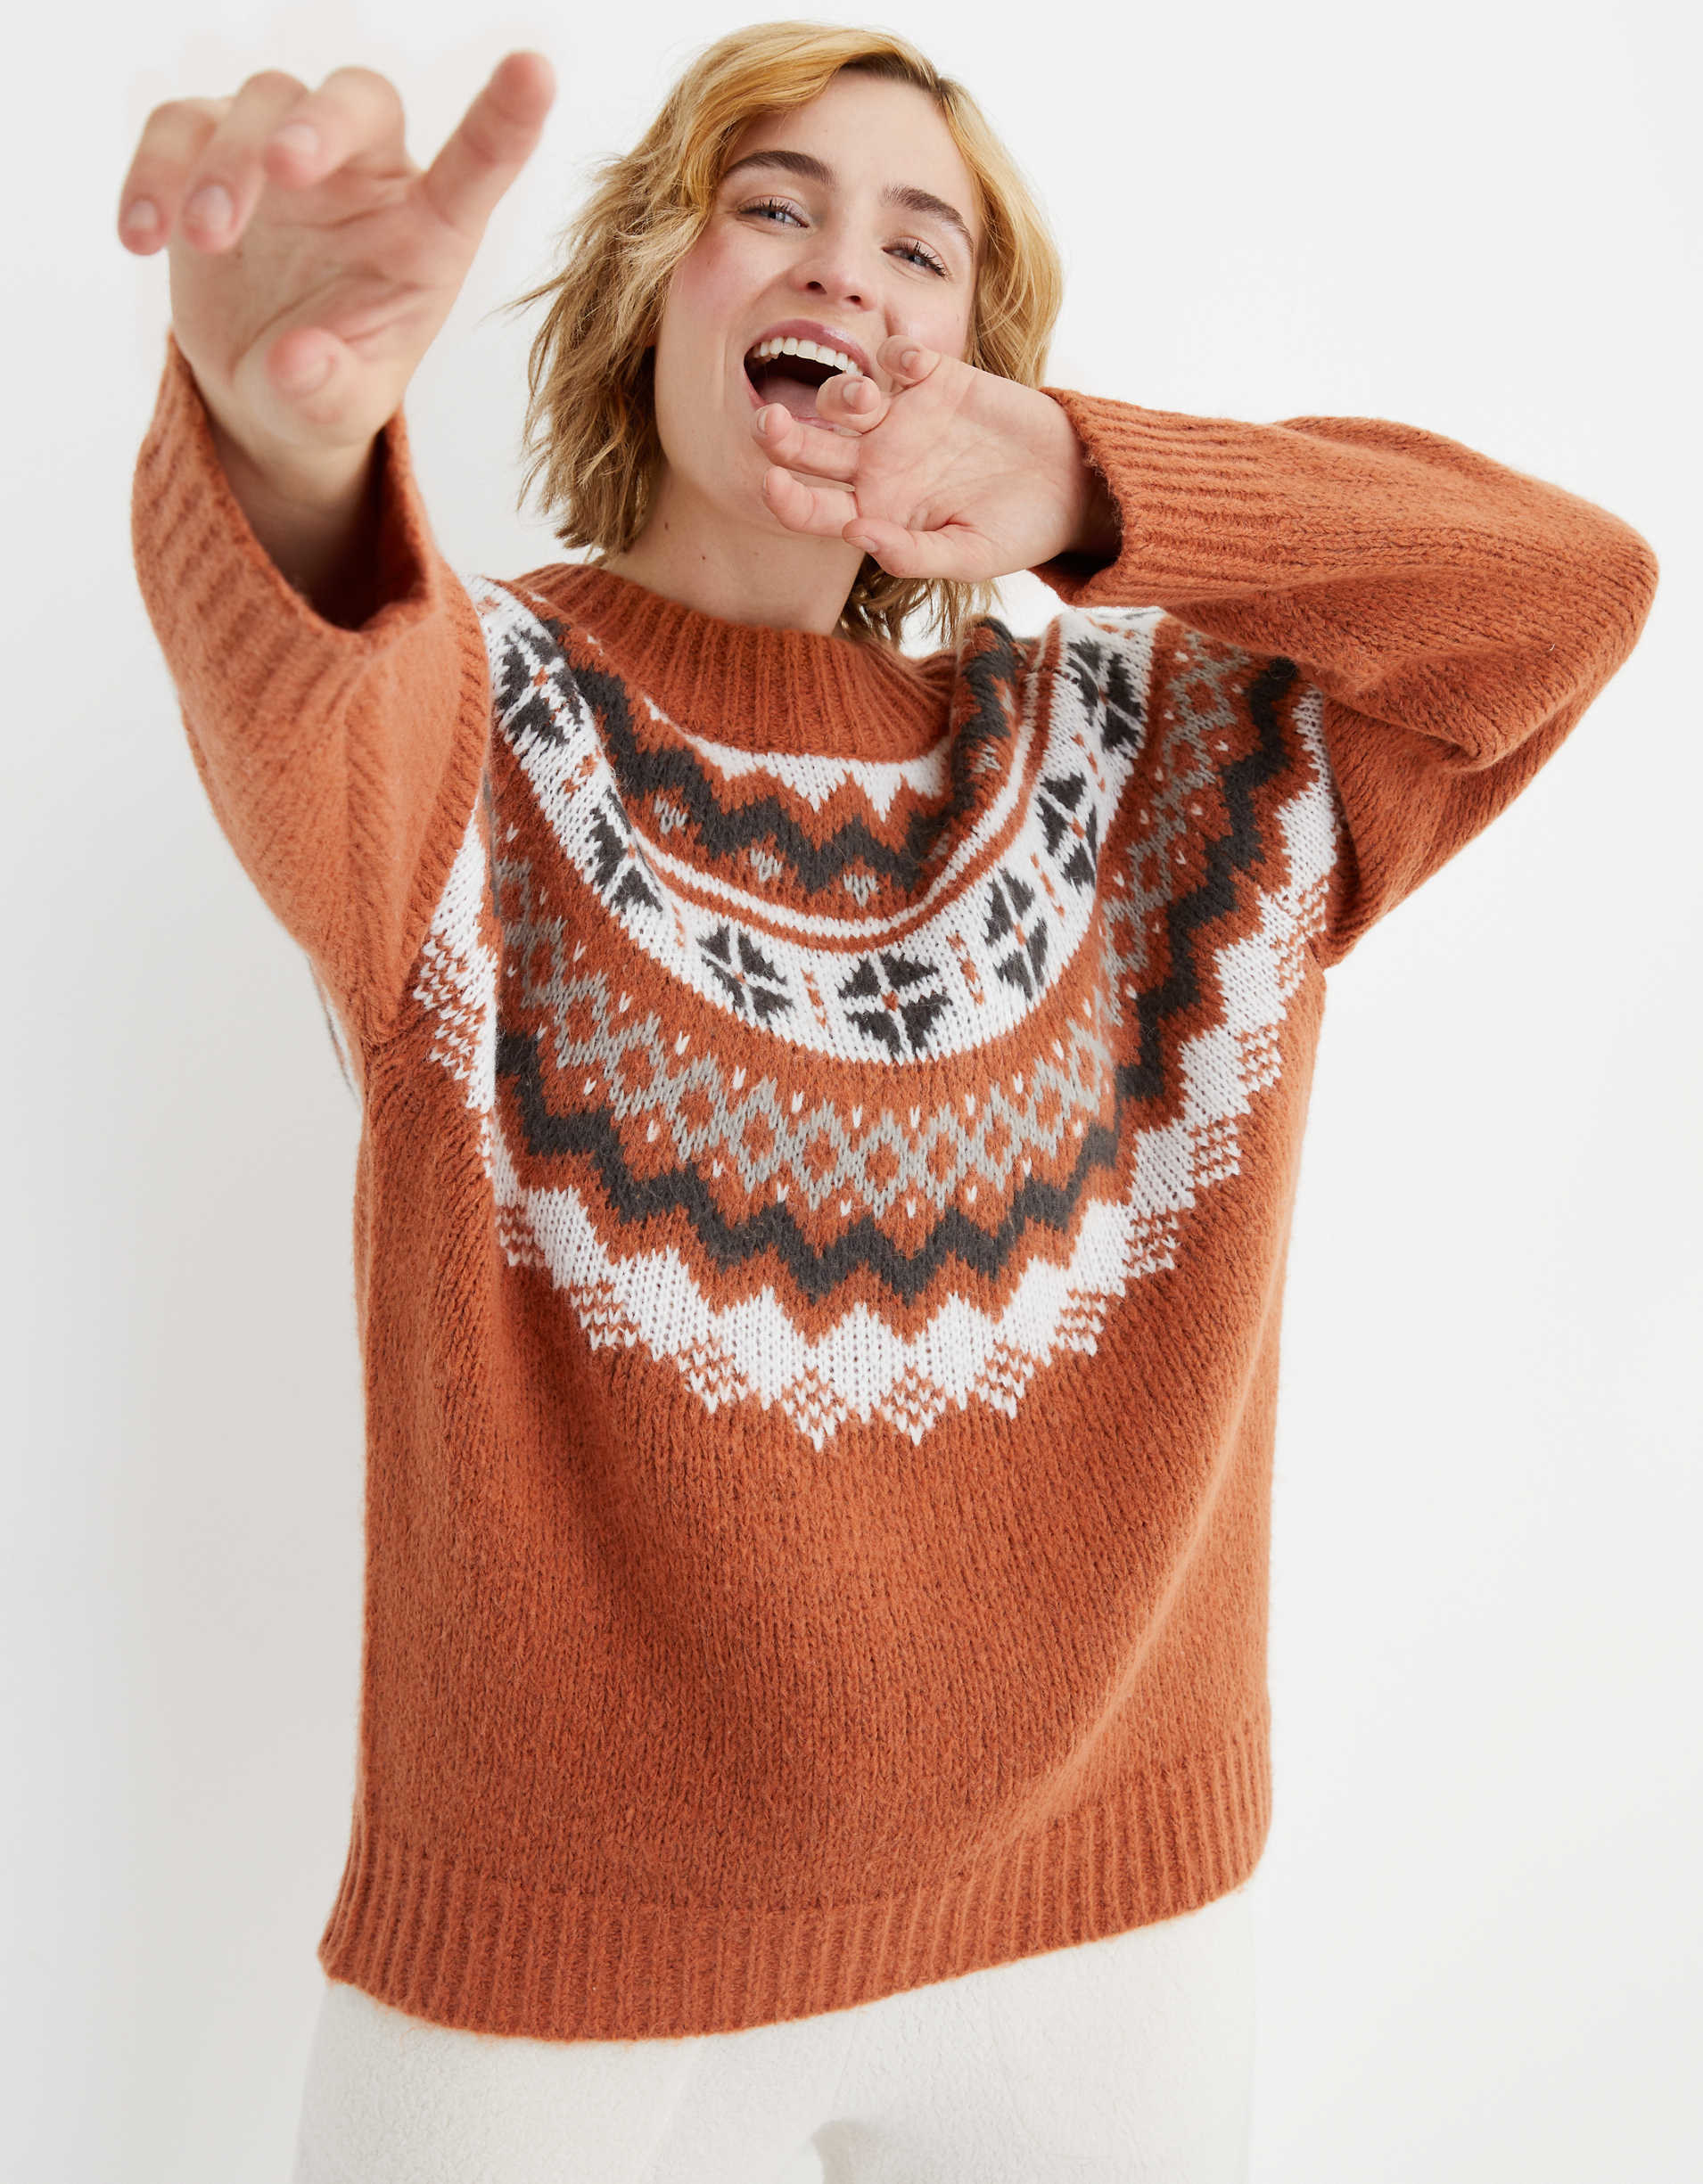 Model wearing the crewneck sweater in orange with a black, white, and grey half-circular geometric pattern around the neckline